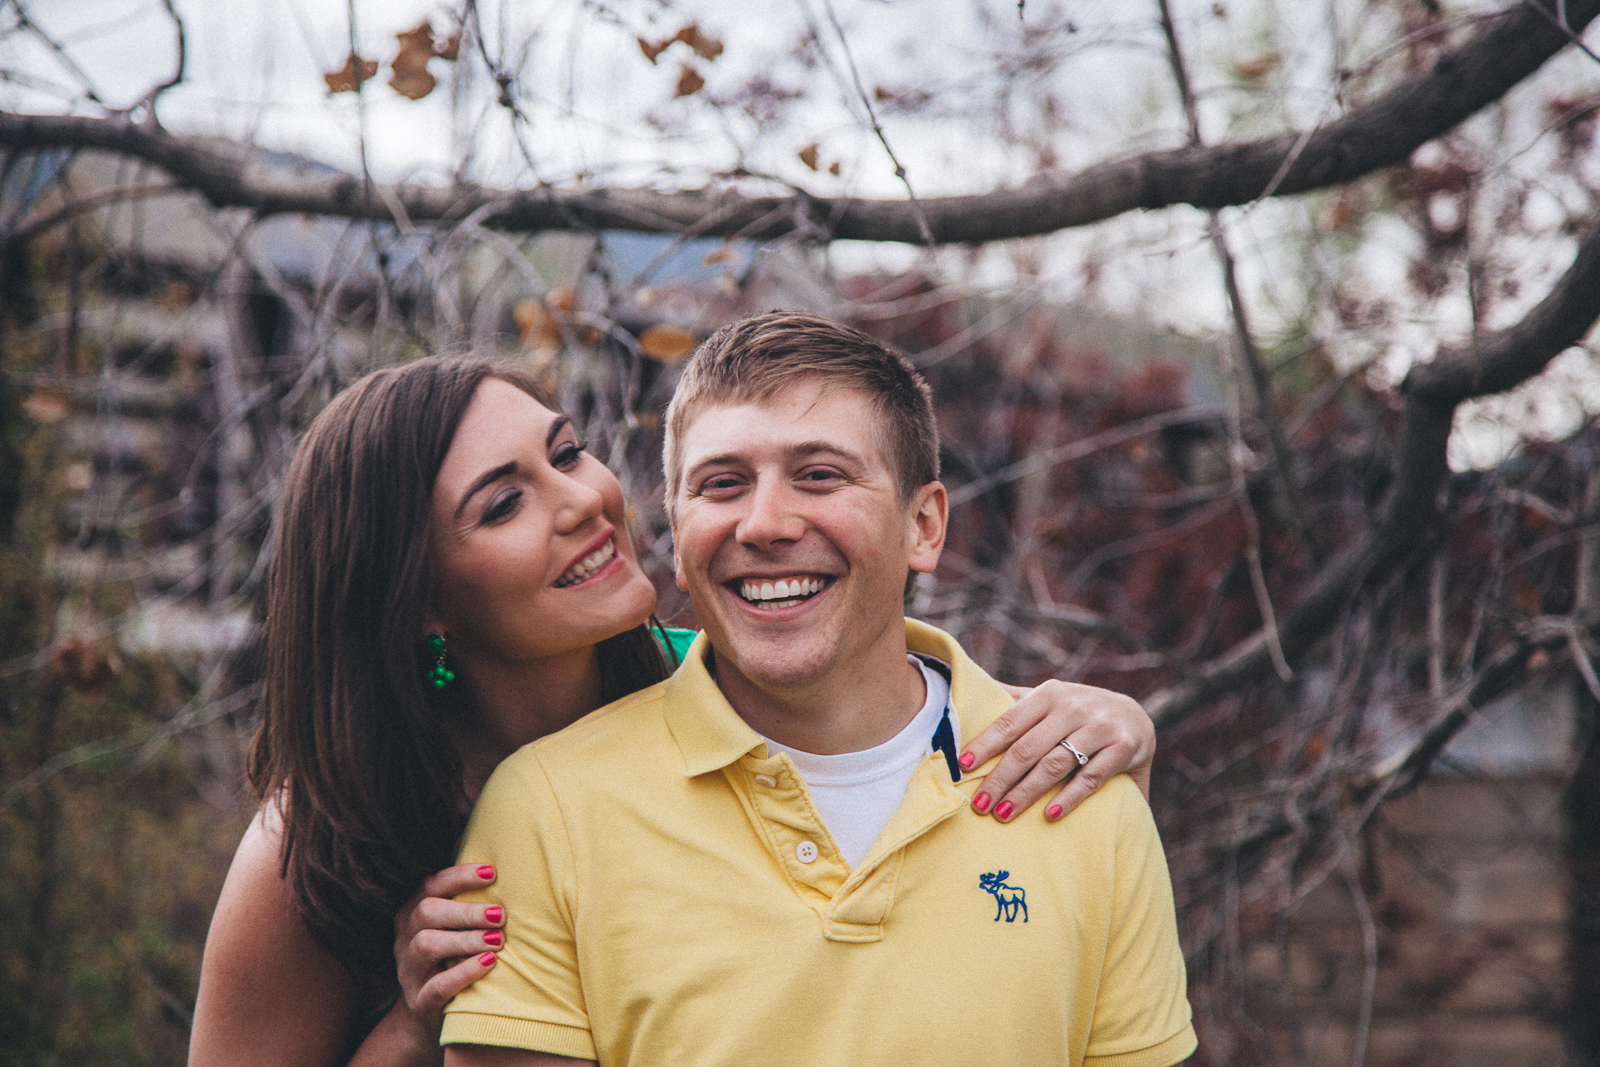 011-engagement-trees-fun-laughing-durango-colorado-farmington